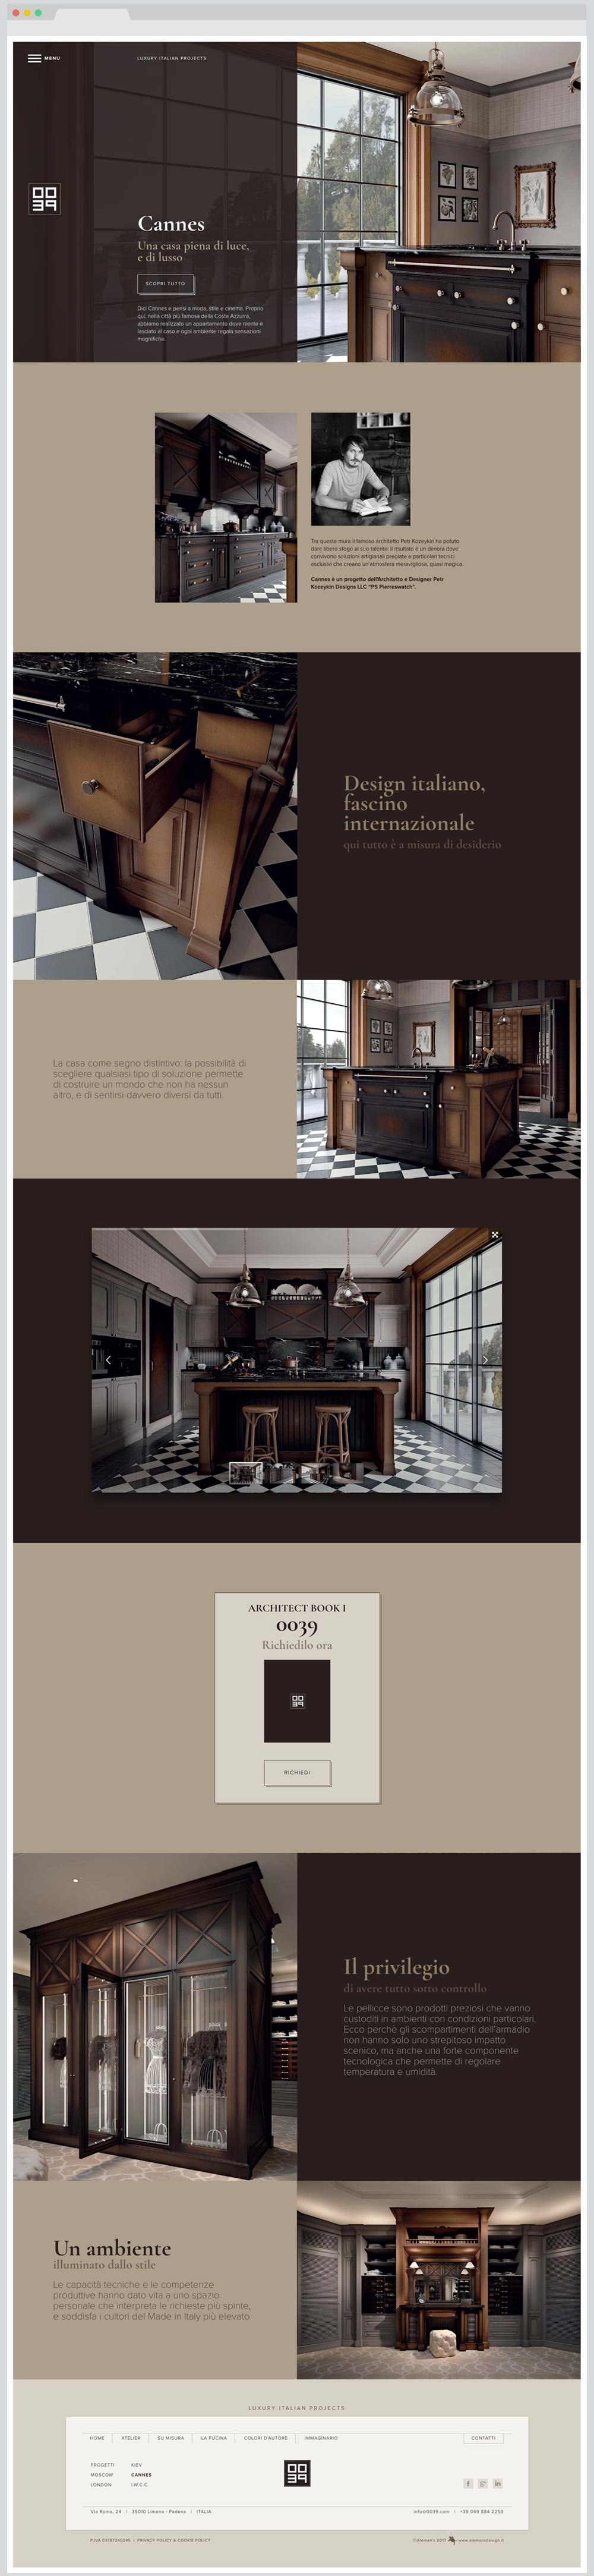 Progetto 0039 - Italian Luxury Design